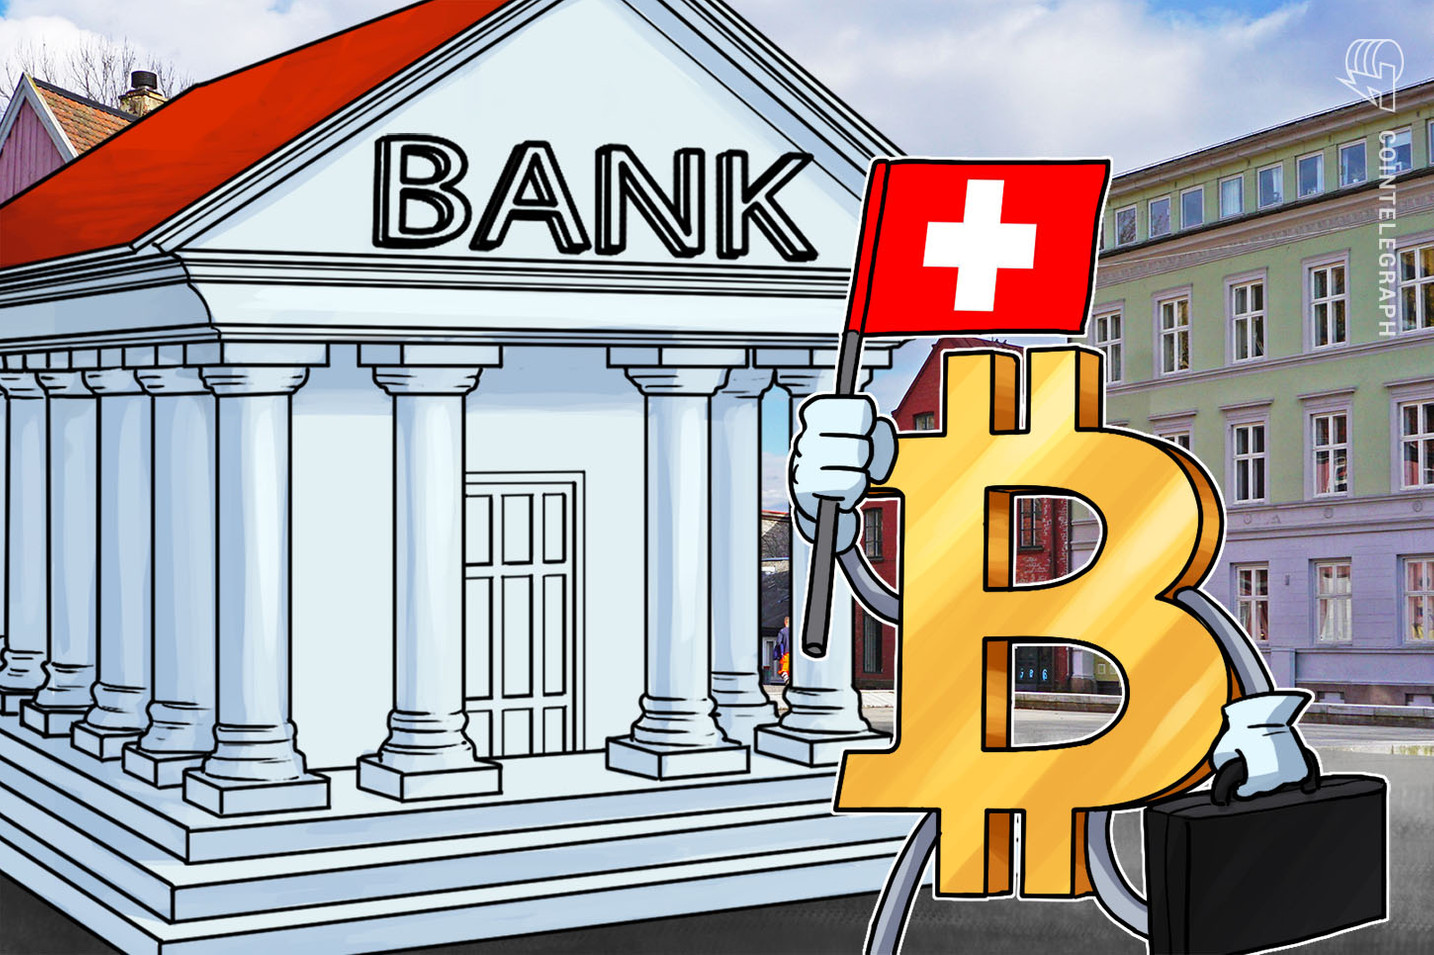 Swiss Bank Becomes First in Country to Offer Business Accounts to Crypto Companies